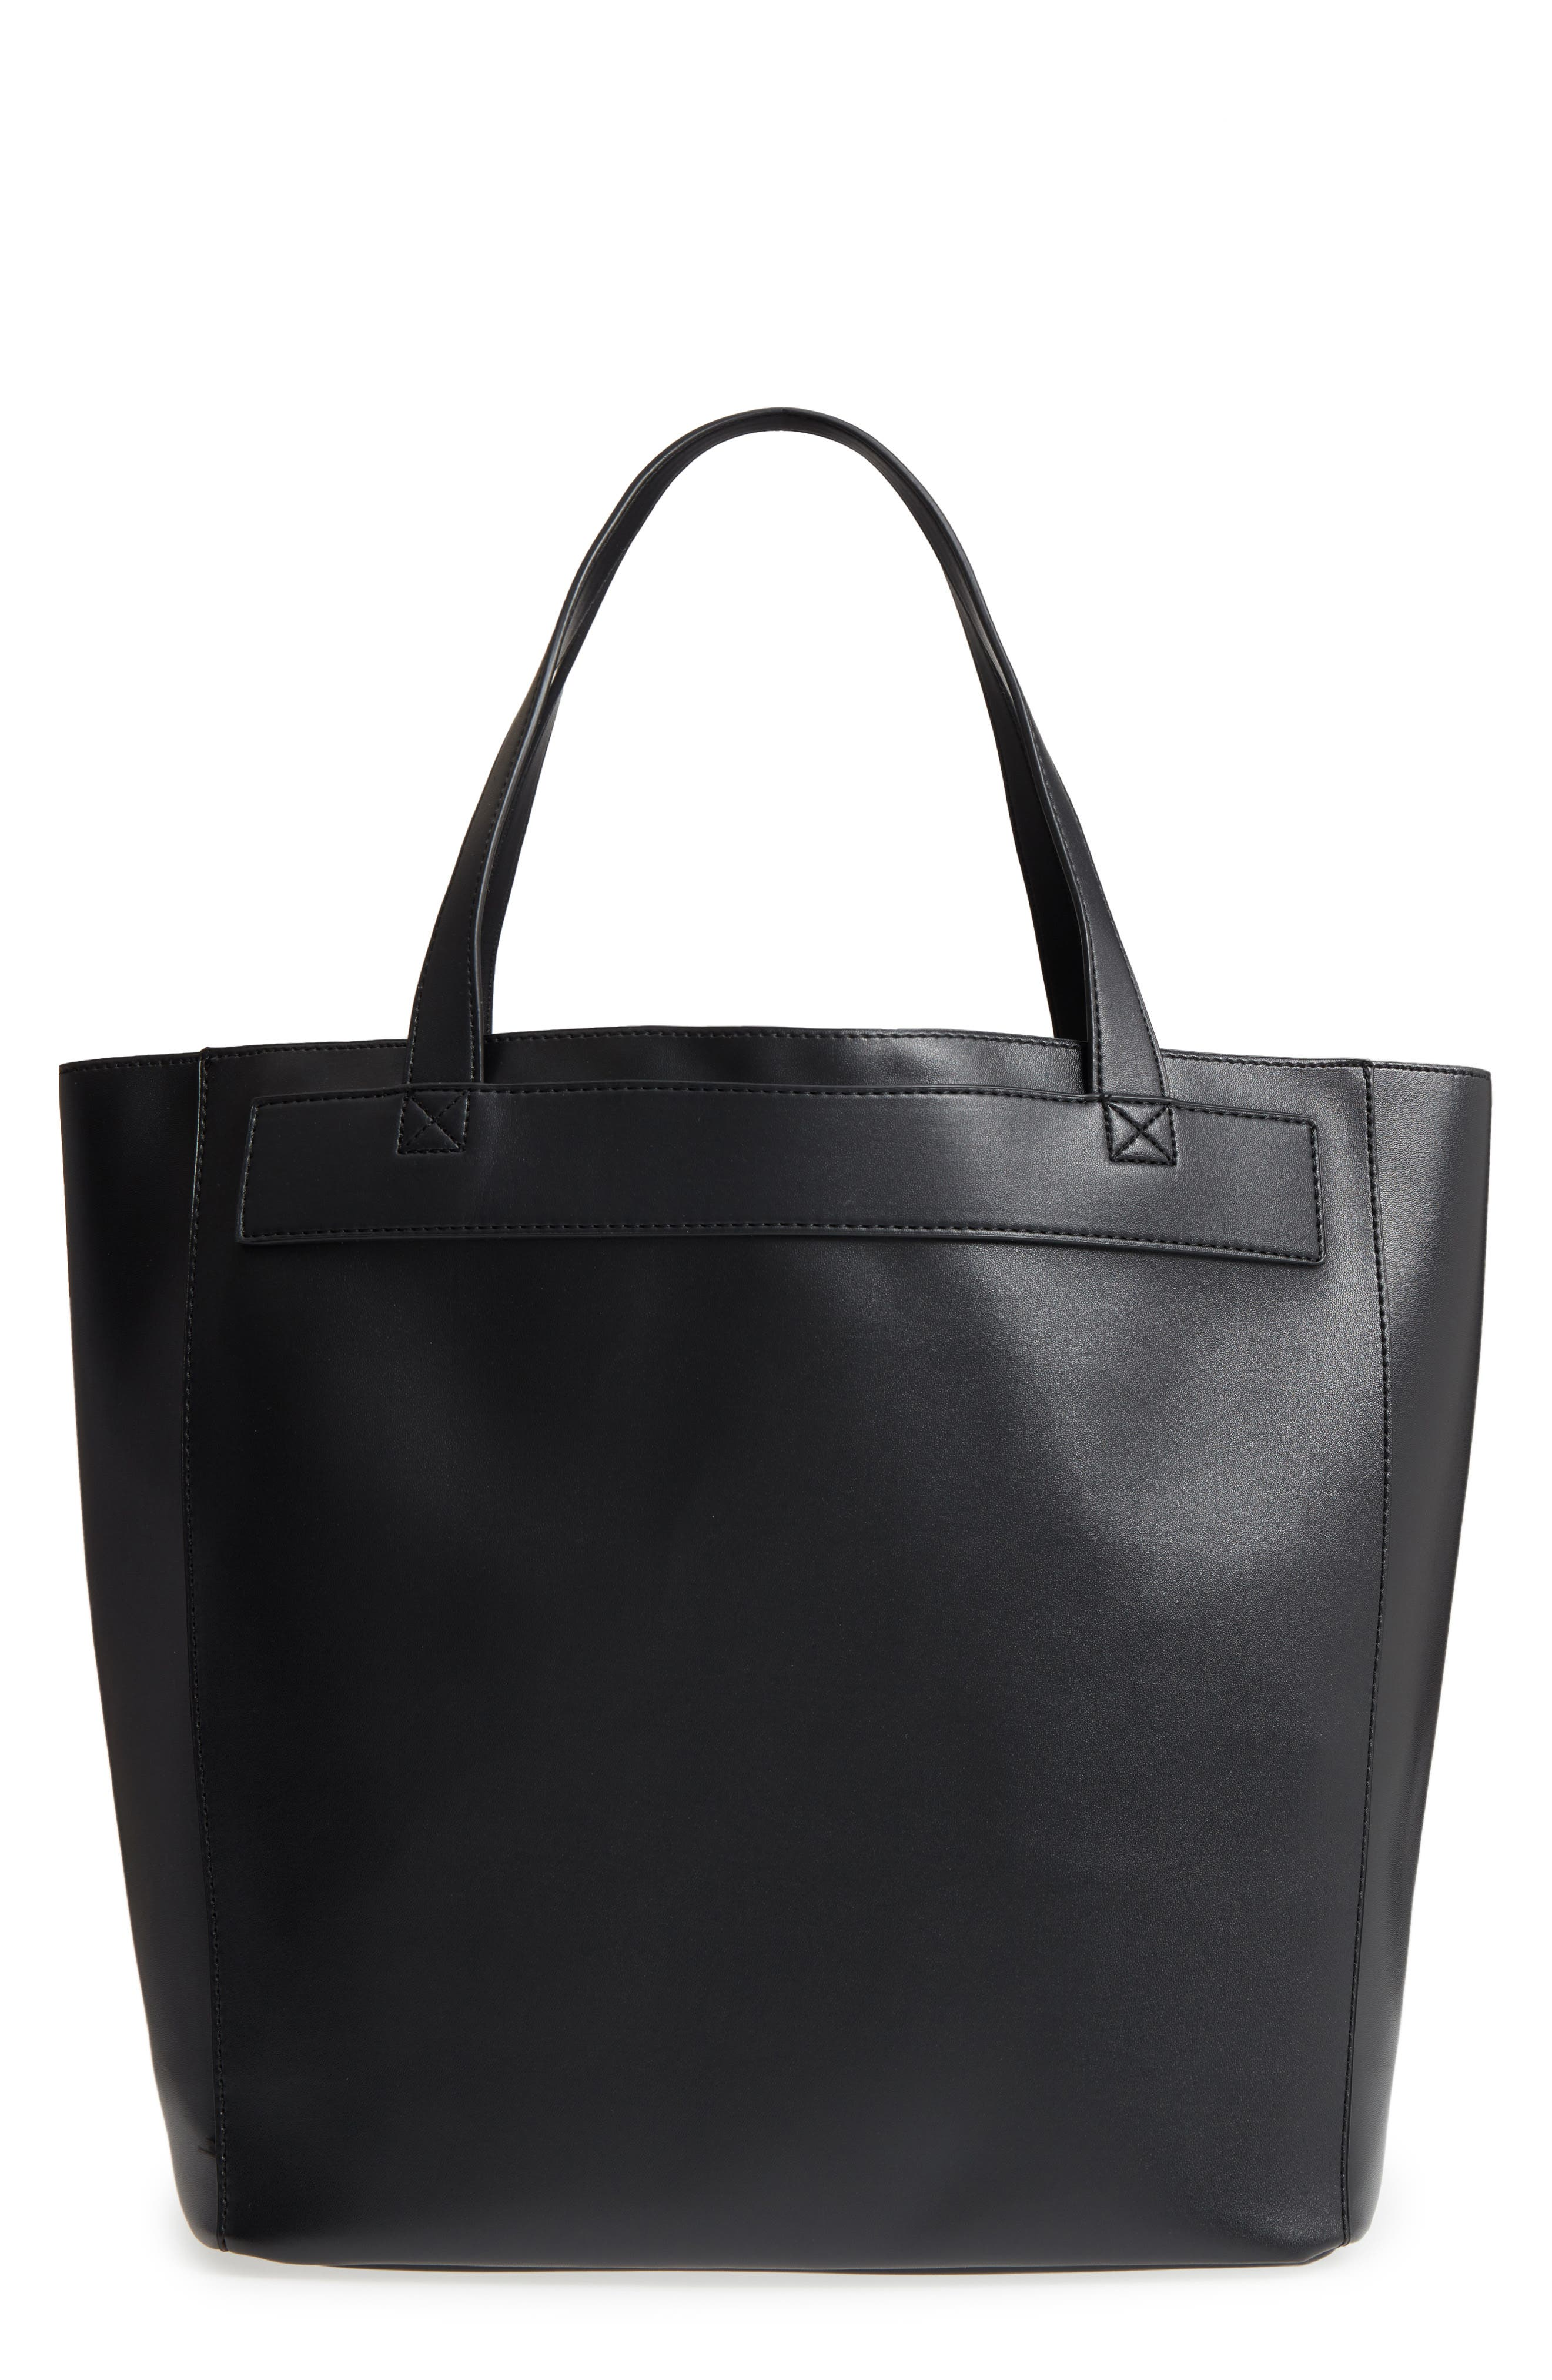 BP. Stitched Faux Leather Tote